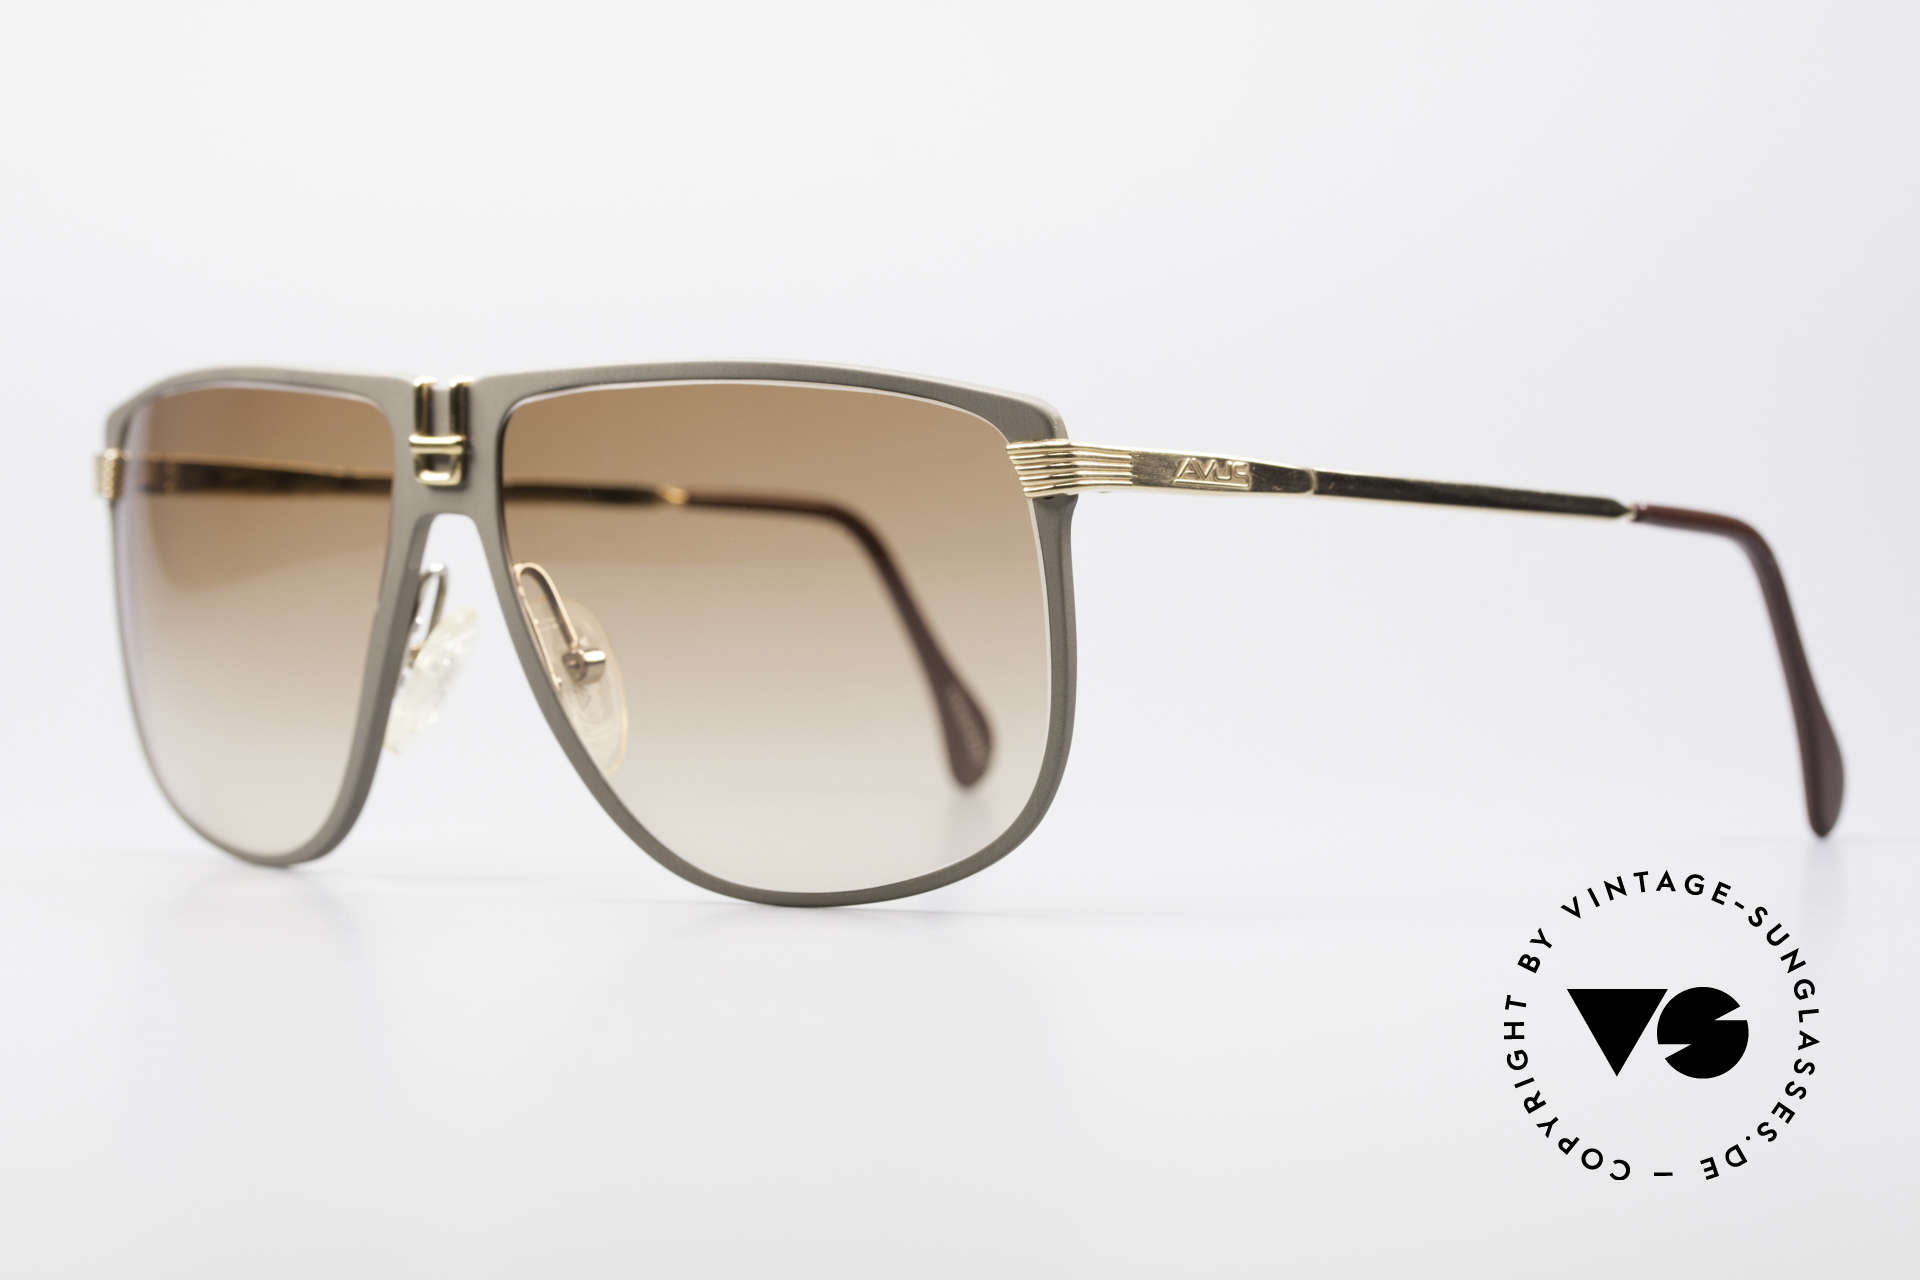 AVUS 210-30 West Germany Sunglasses, made in the same factory like the legendary Alpina M1, Made for Men